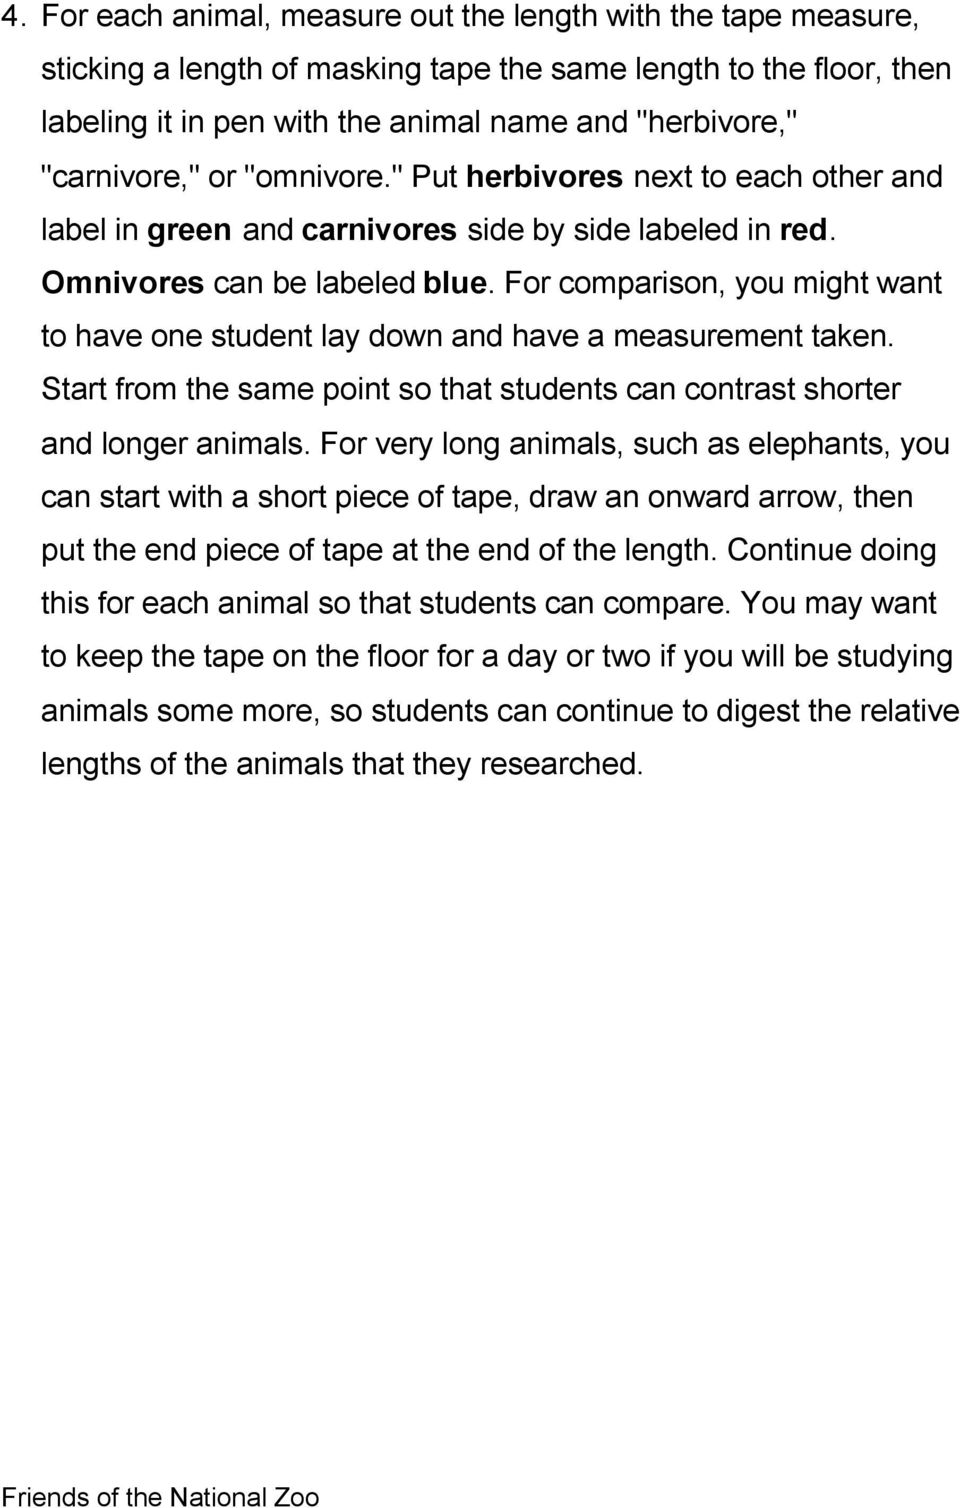 For comparison, you might want to have one student lay down and have a measurement taken. Start from the same point so that students can contrast shorter and longer animals.